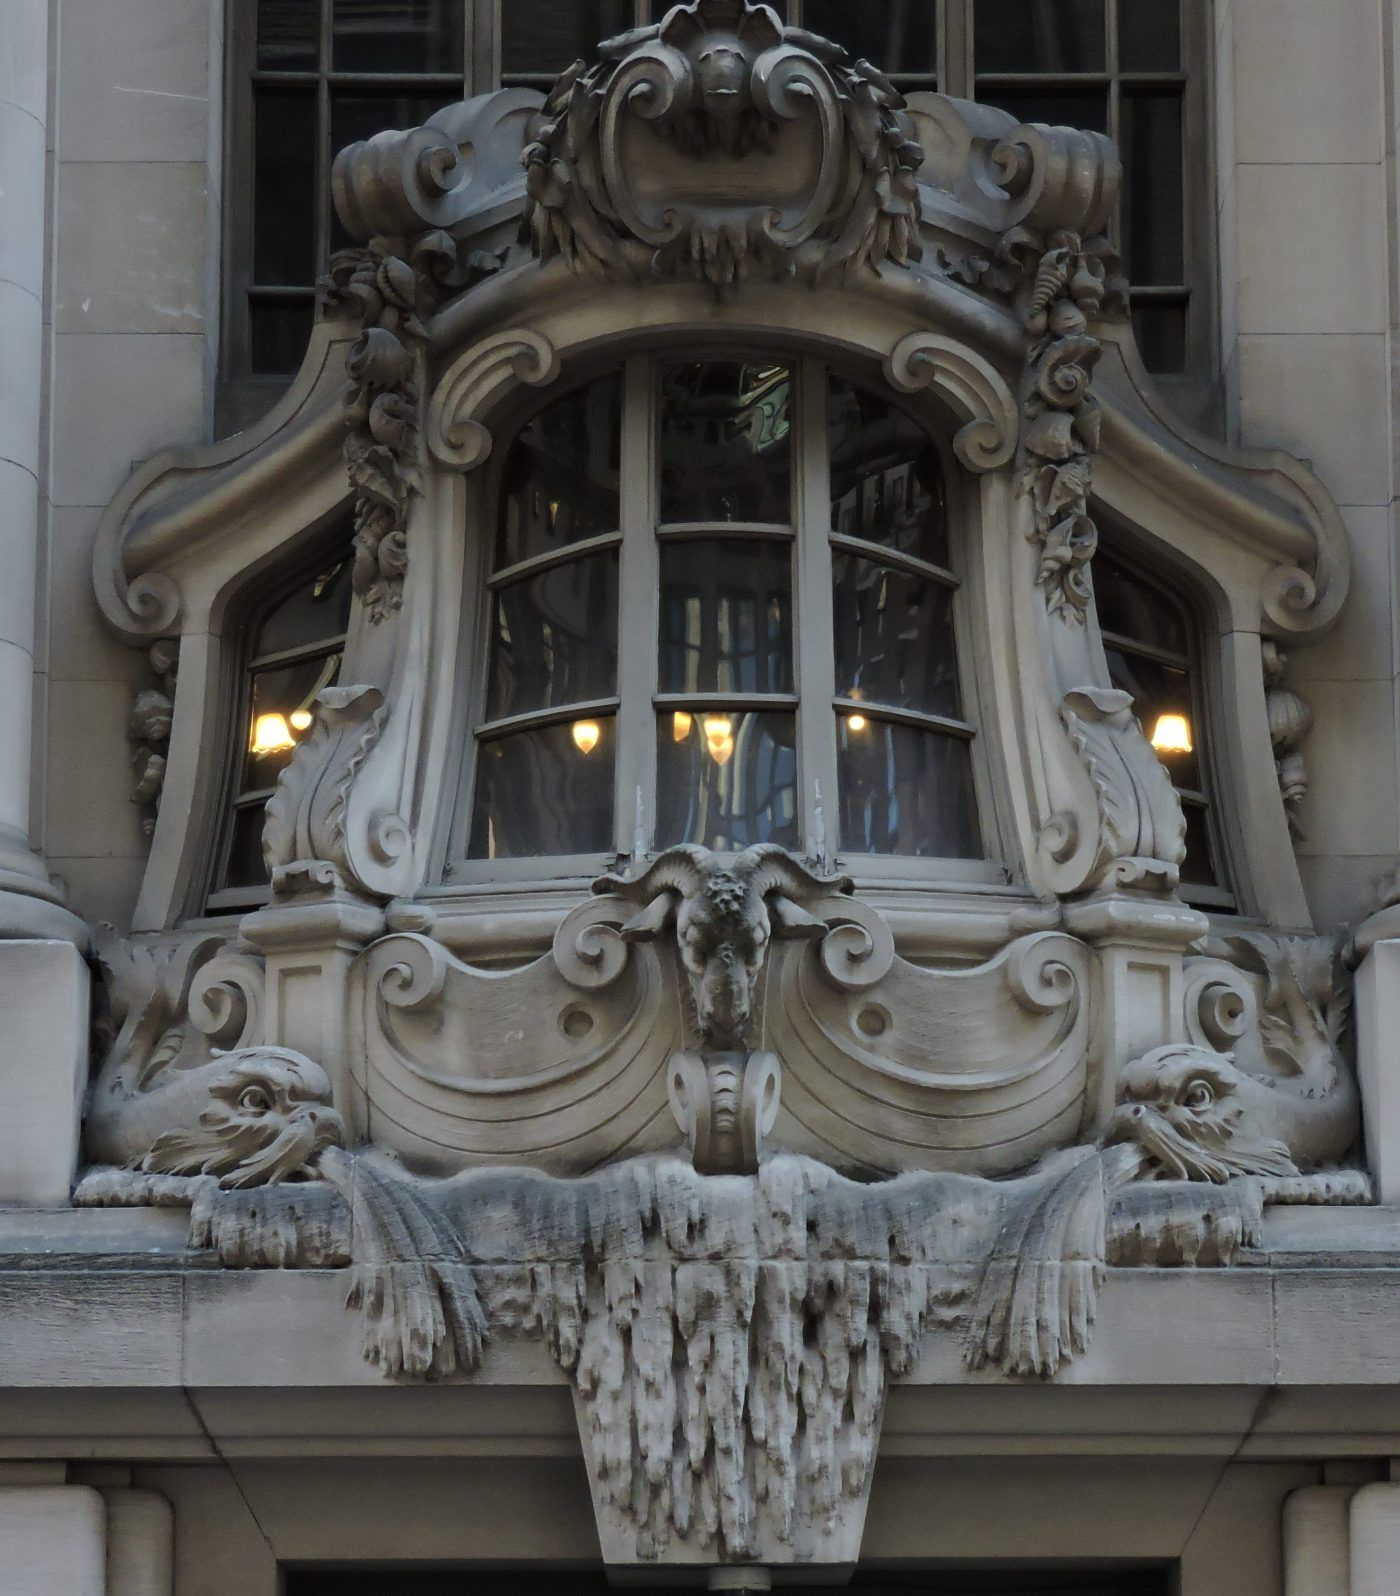 The New York Yacht Club Windows In Nyc The Building Is A Six Storied Beaux Arts Landmark With A Nautical Themed Lim Windows Architecture Details Ceiling Lights